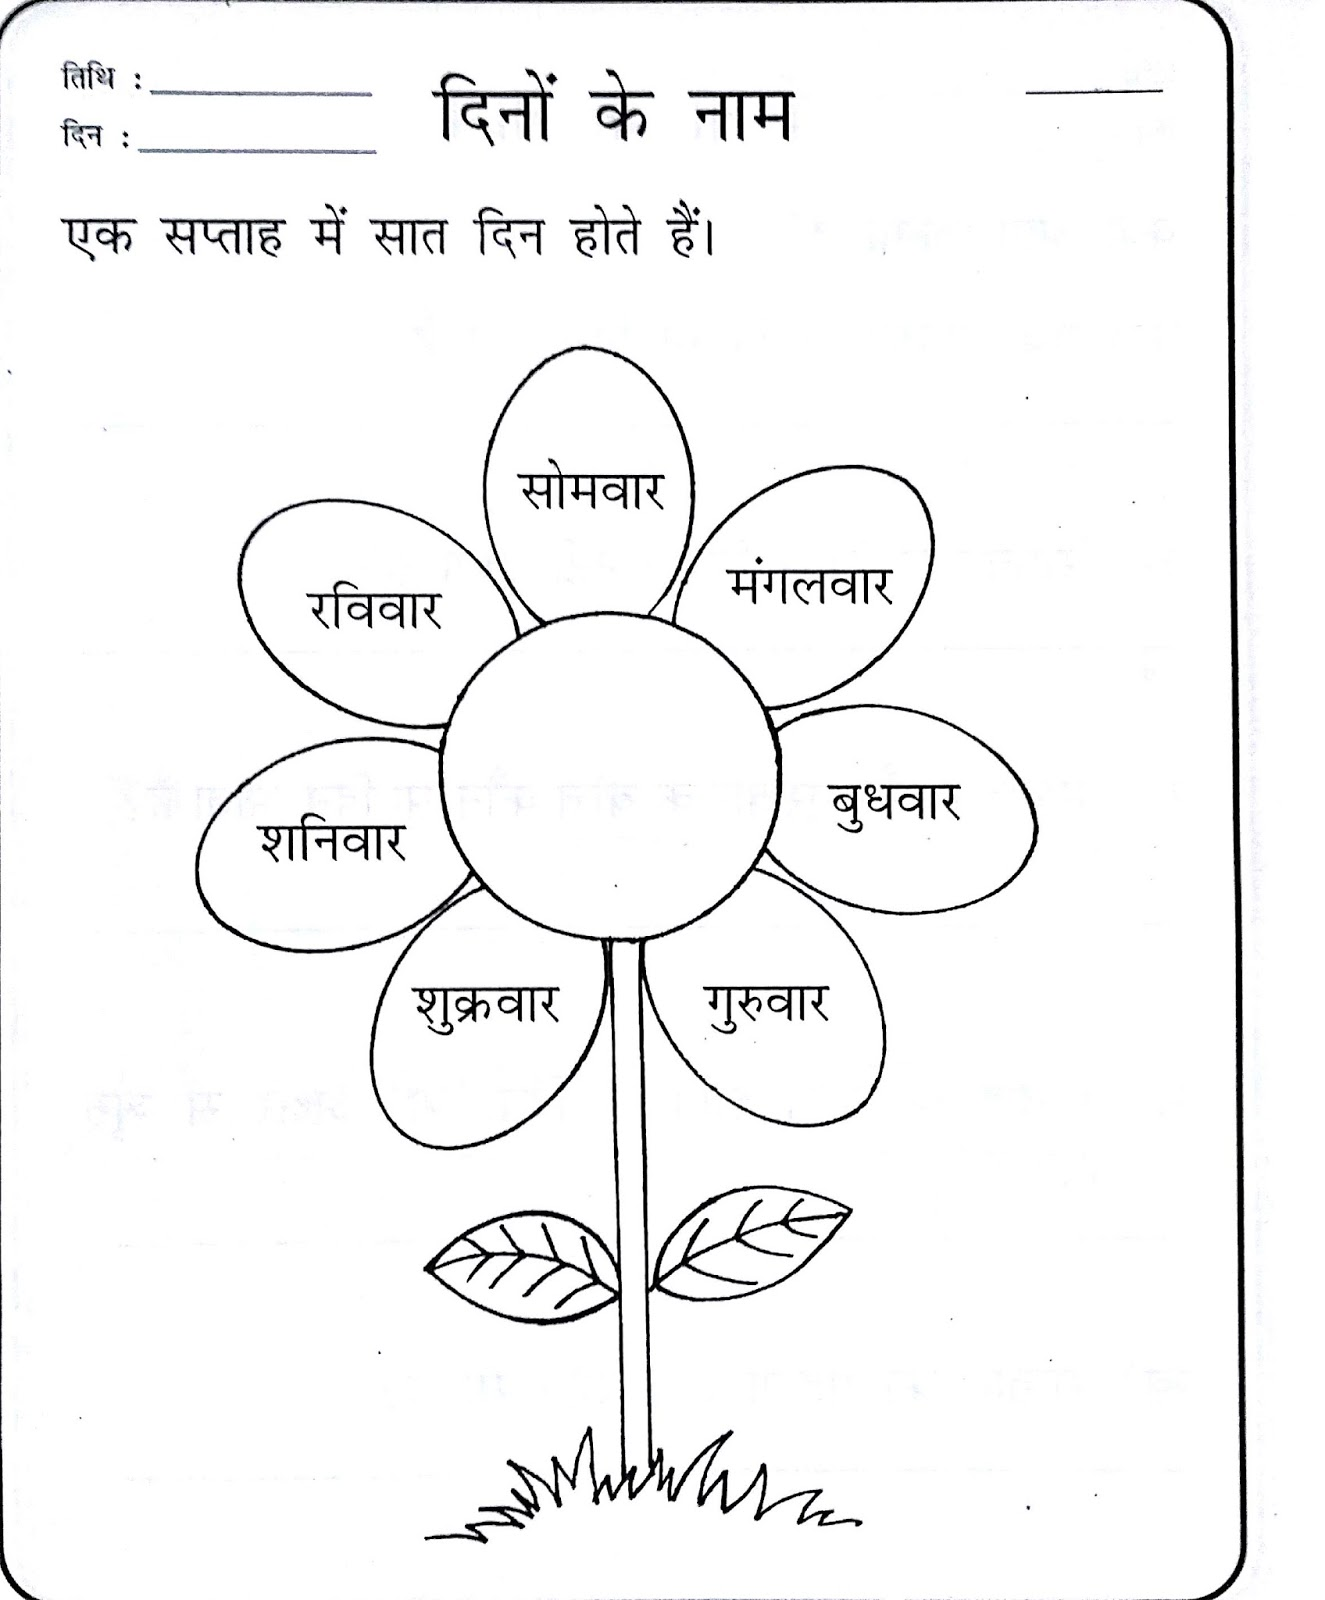 Hindi Worksheets Grade 1   Printable Worksheets and Activities for  Teachers [ 1600 x 1325 Pixel ]